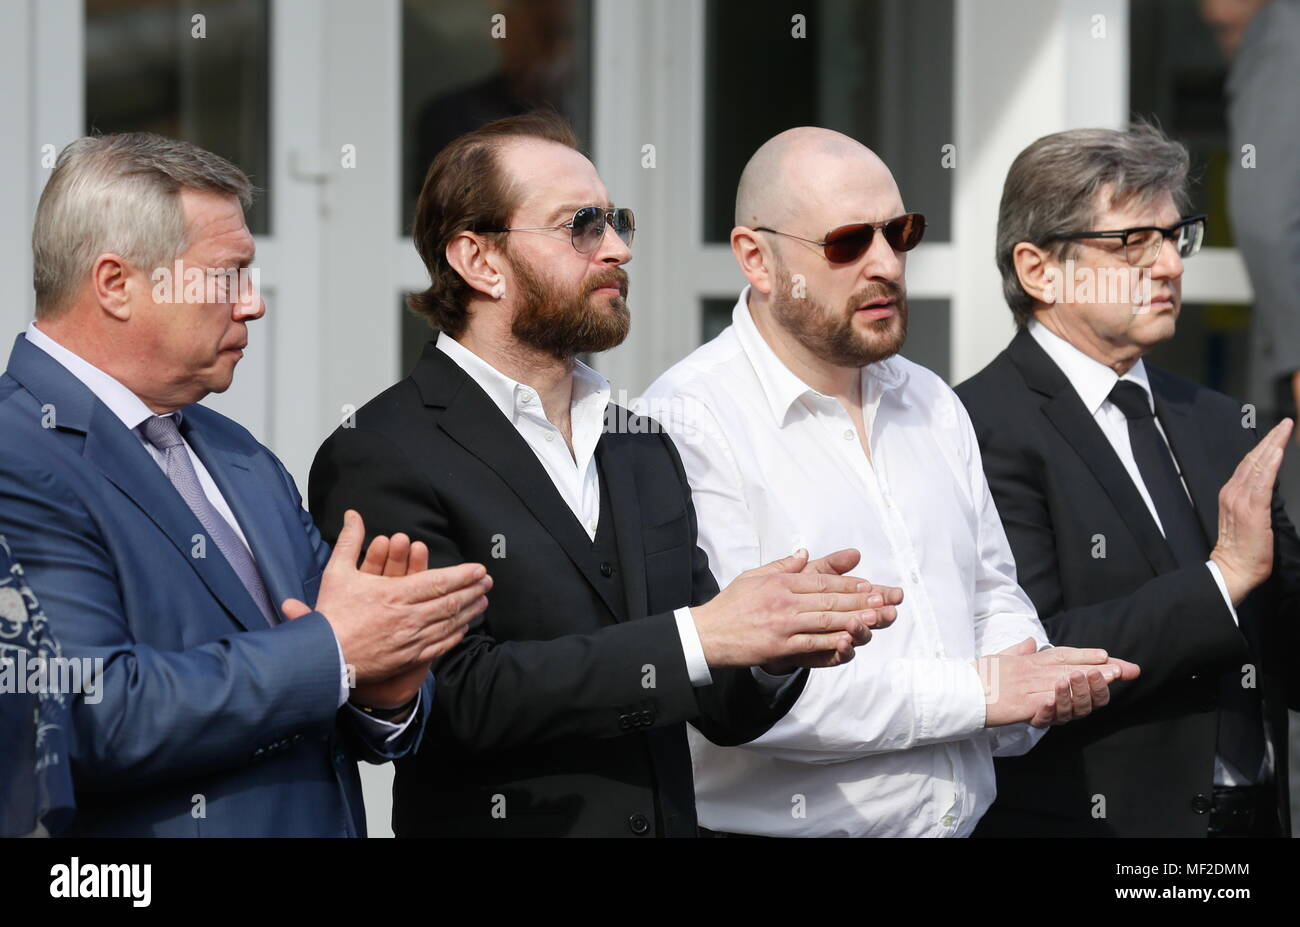 Who dressed the Russian national team in suits a la Buba Kastorsky